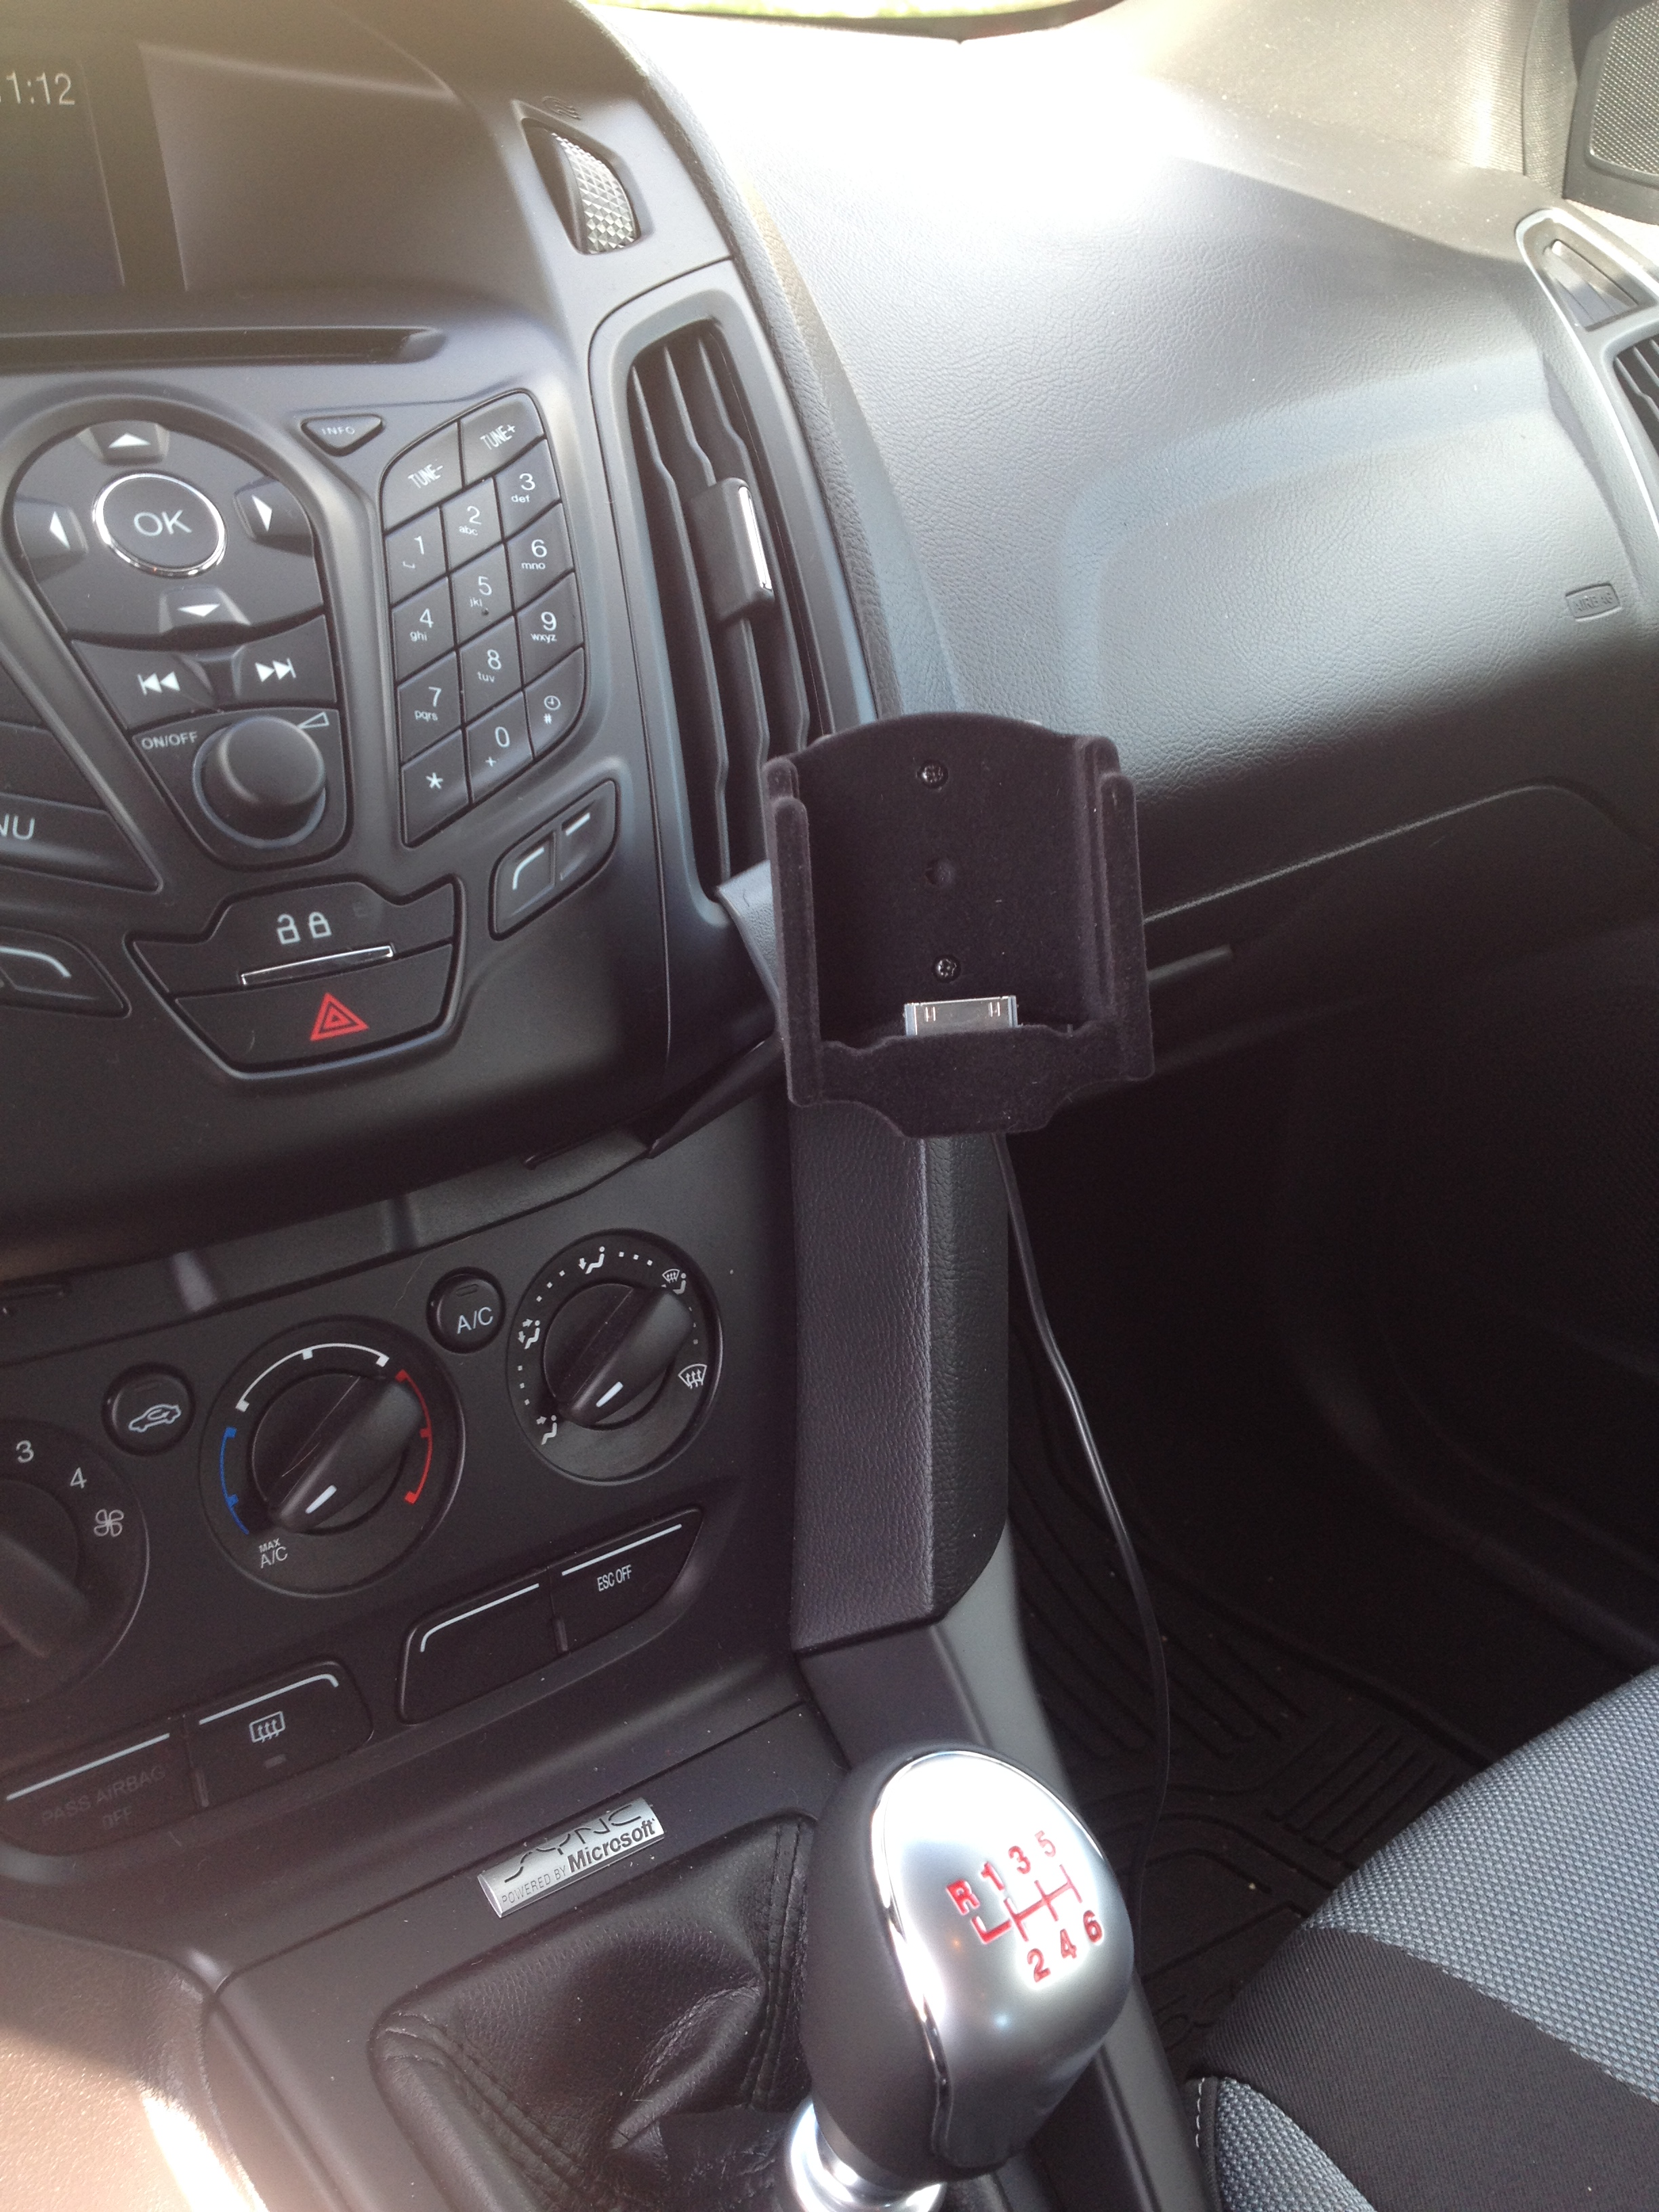 How To Conceal Usb Cable From Phone Dock To Center Console Armrest